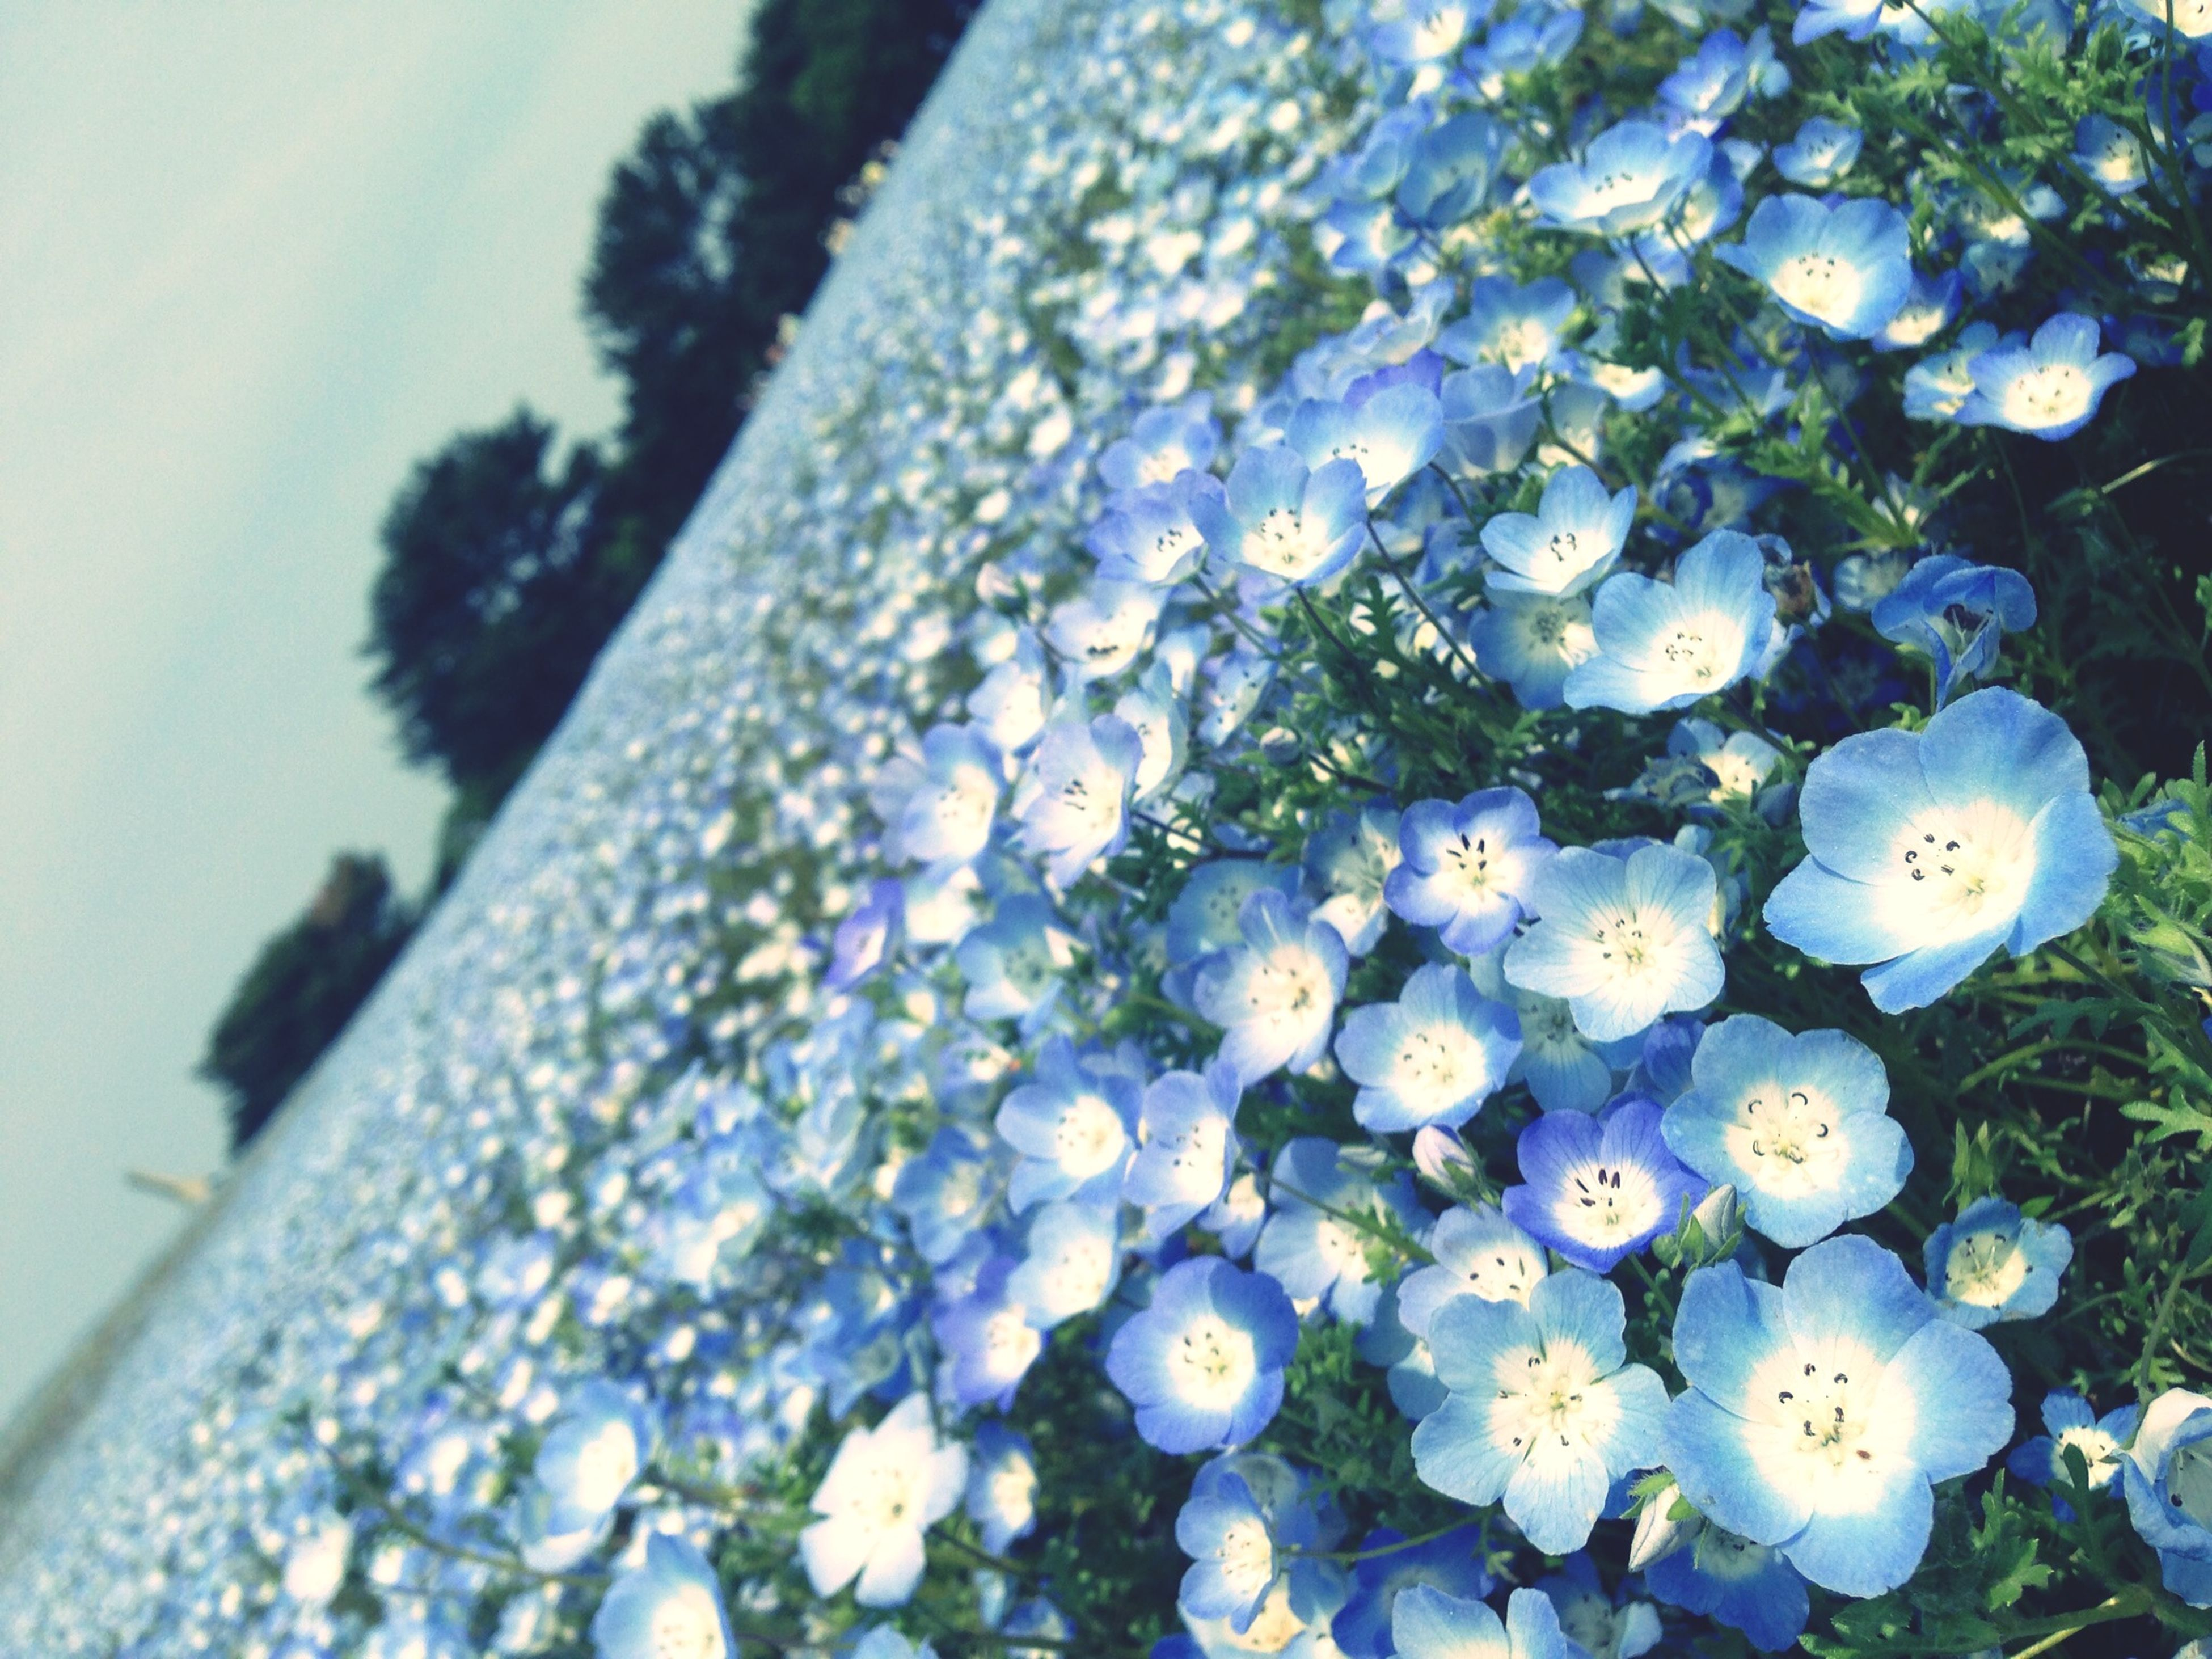 flower, growth, fragility, freshness, white color, beauty in nature, nature, close-up, plant, focus on foreground, blooming, petal, tree, day, in bloom, selective focus, blossom, low angle view, botany, outdoors